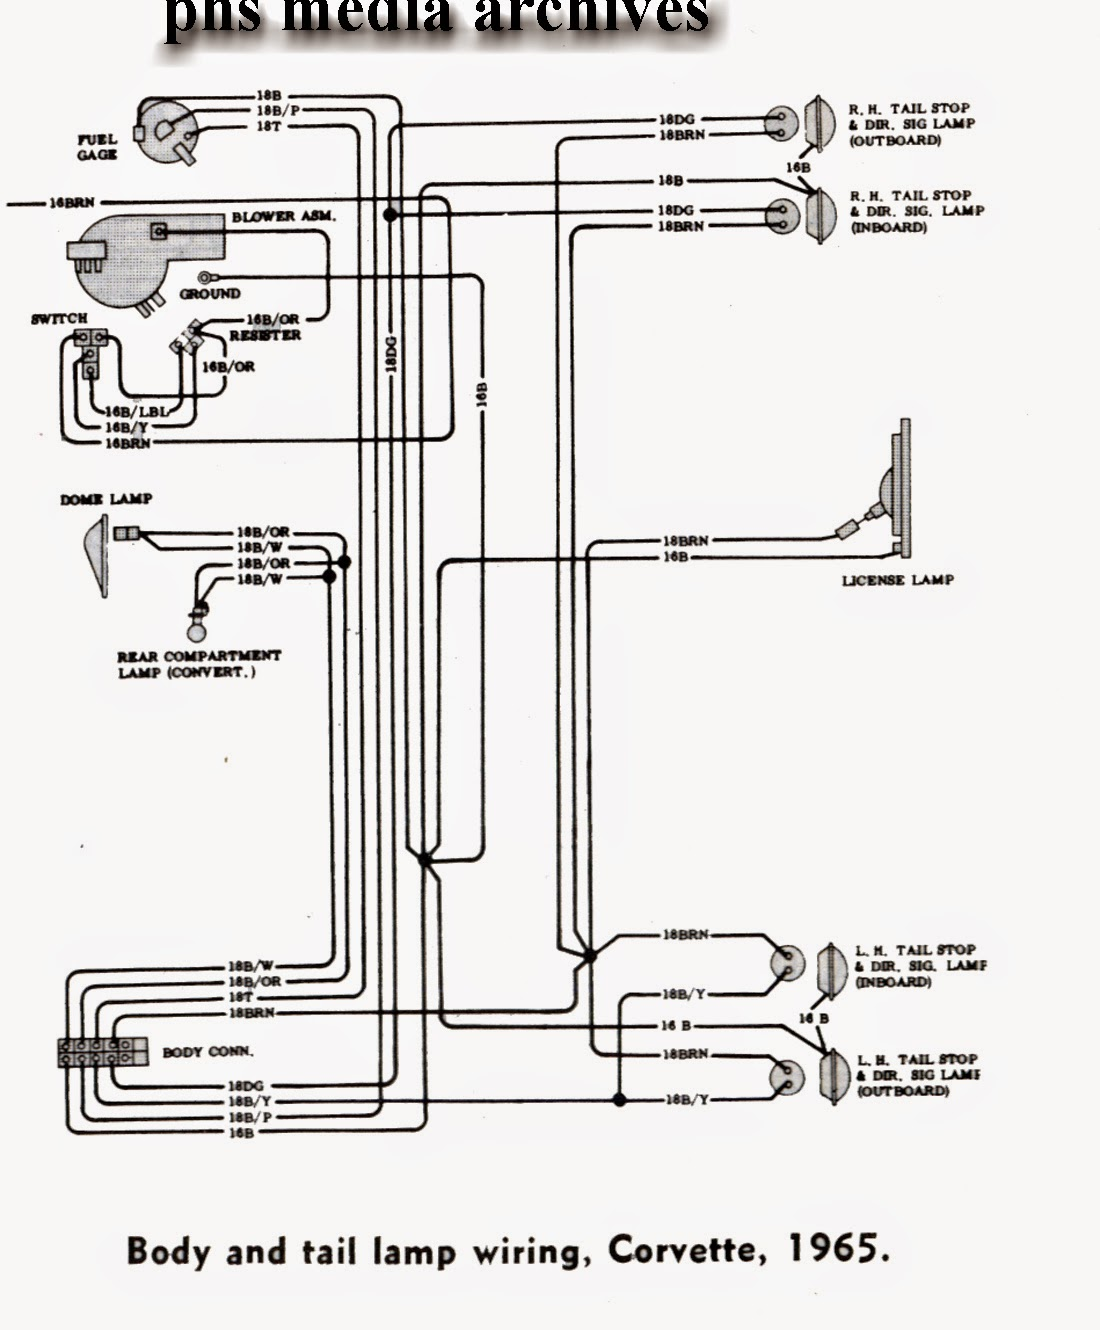 1979 Corvette Headlight Wiring Diagram Trailer With Electric Brakes 79 Stereo Auto